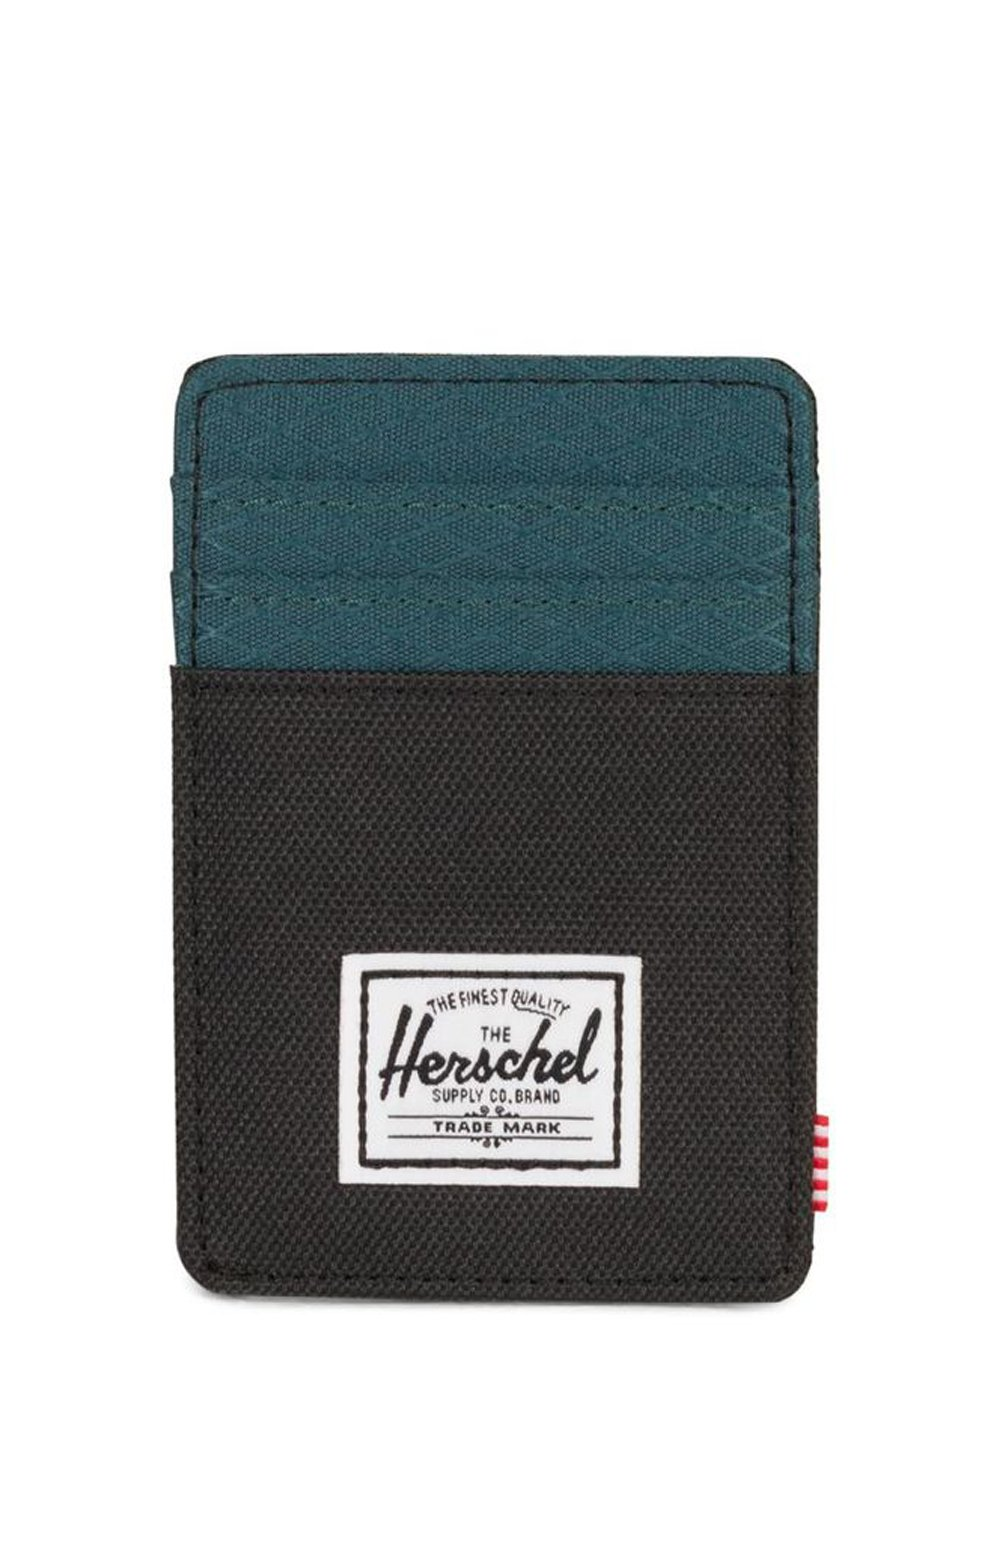 Raven Wallet - Black/Teal